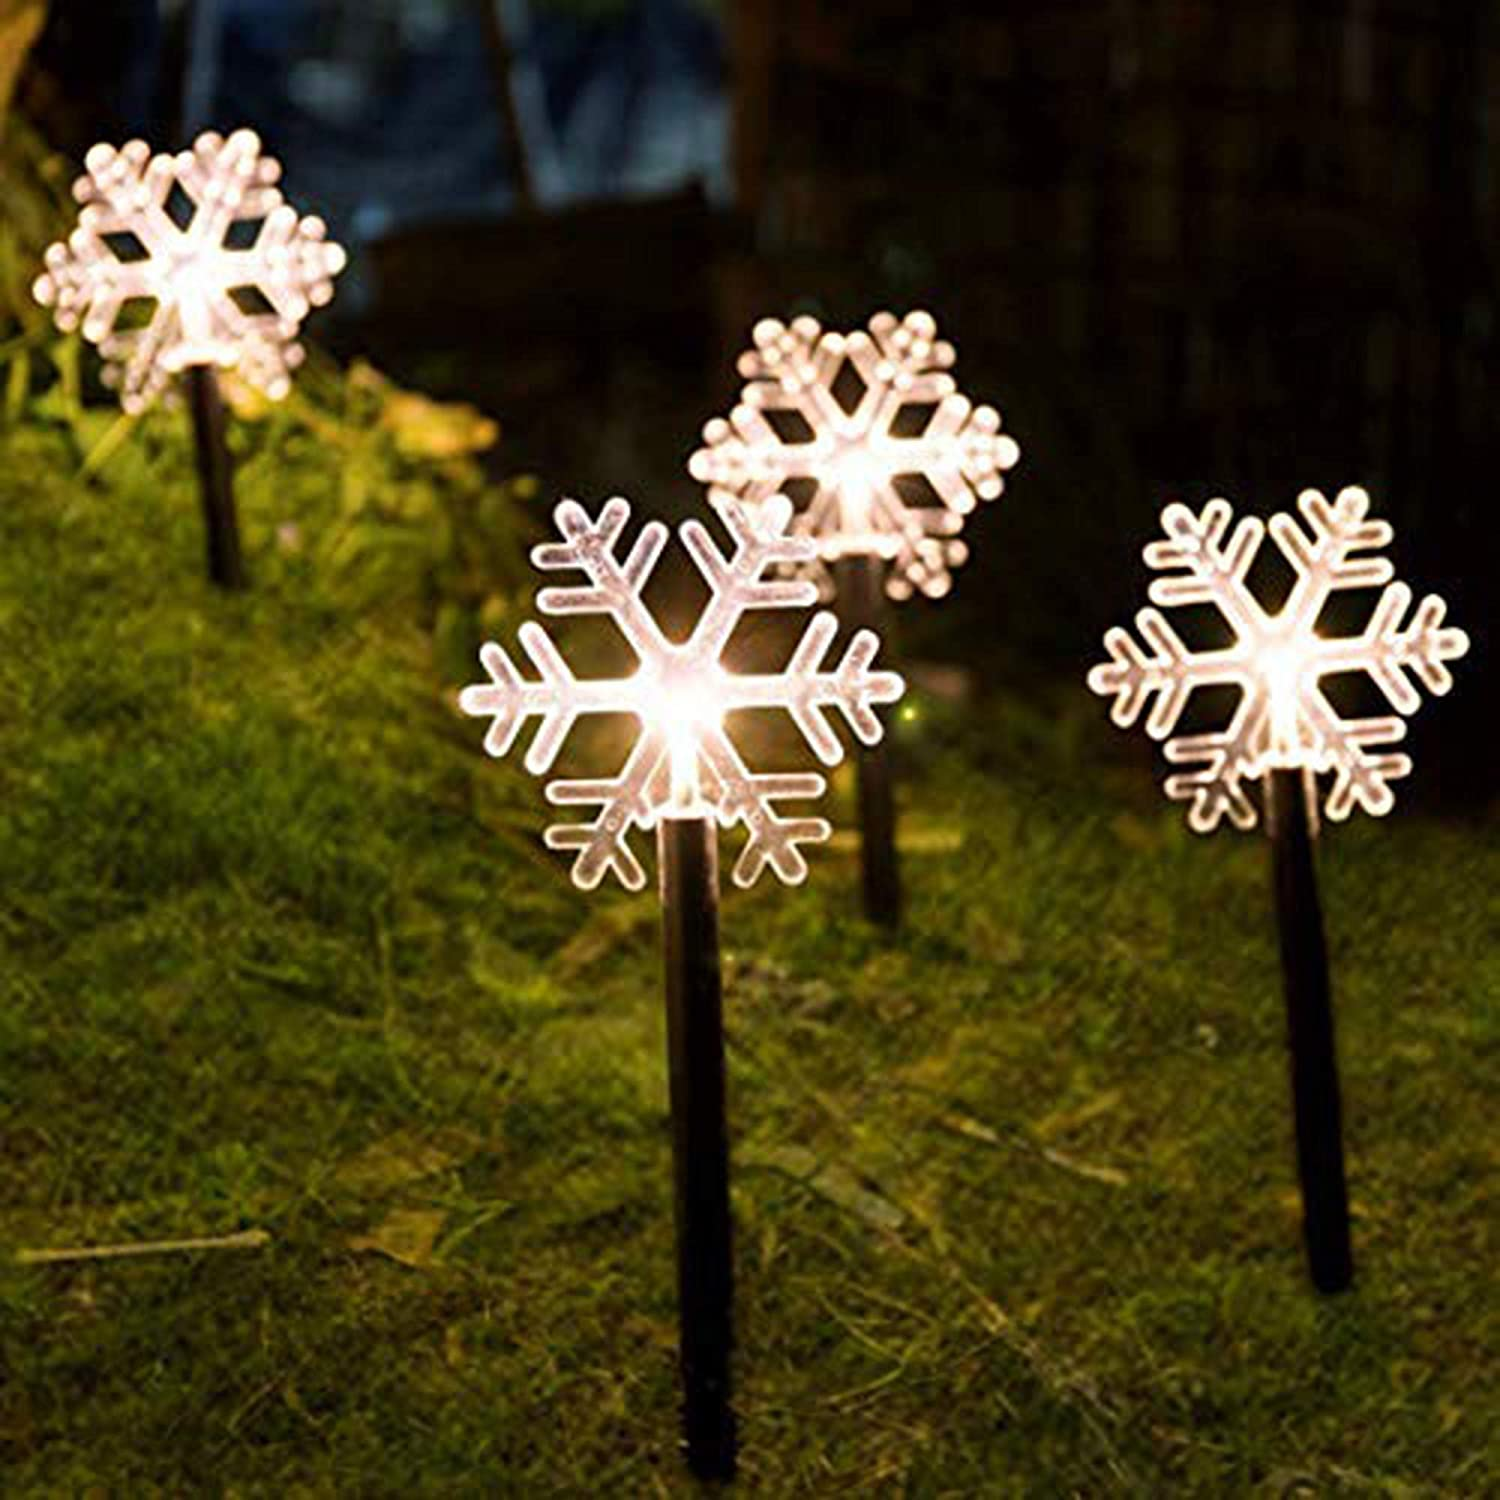 FUCHSUN Christmas Pathway Lights Decorative Garden Display LED Light 5 Pieces Warm White Battery Operated for Indoor and Outdoor Holiday Decoration-Snowflakes